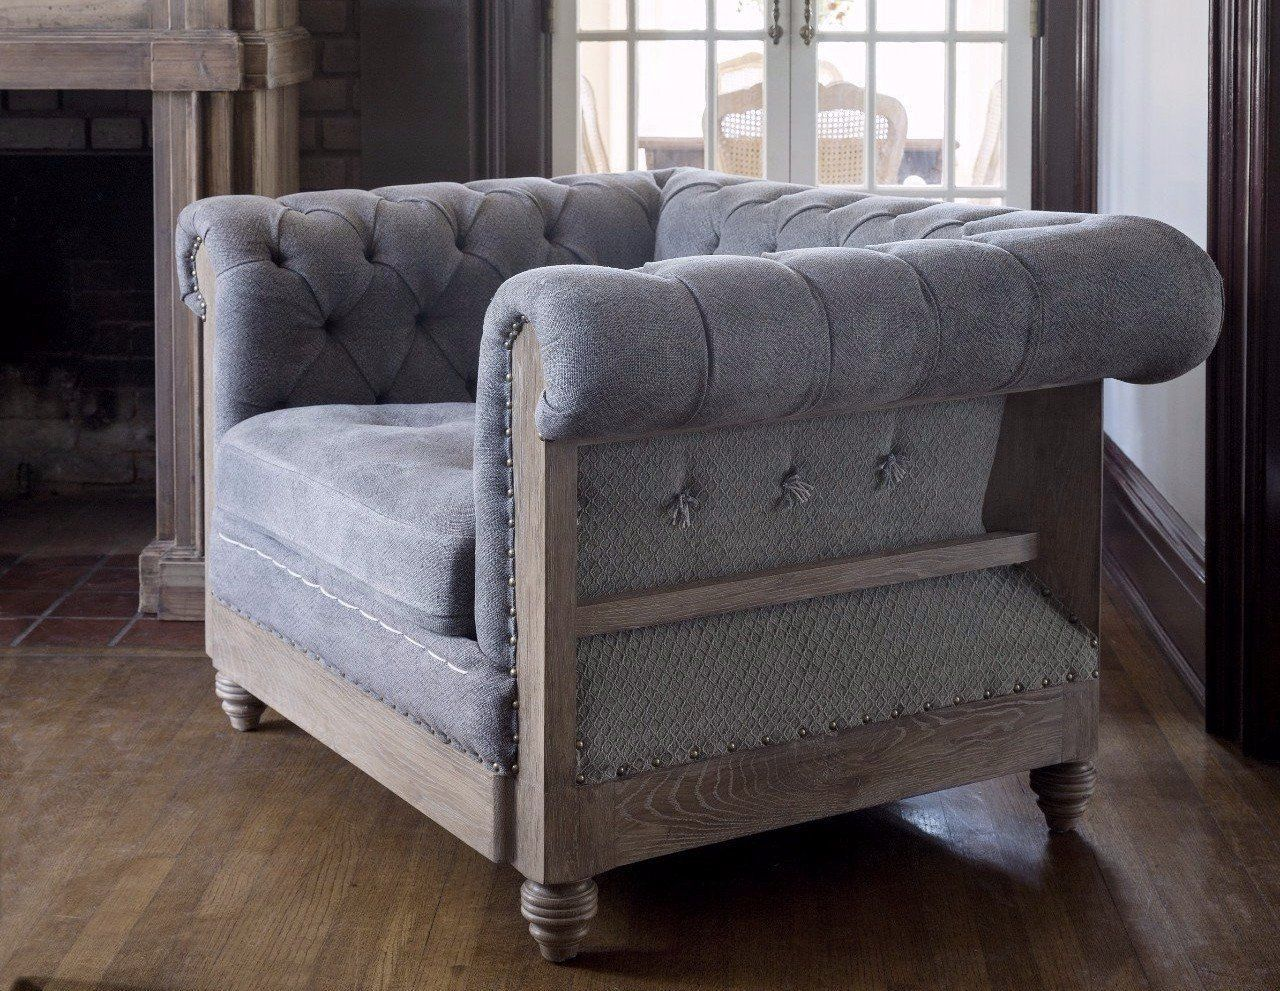 Capital Hotel Chesterfield Chair | Chesterfield chair, Chesterfield ...